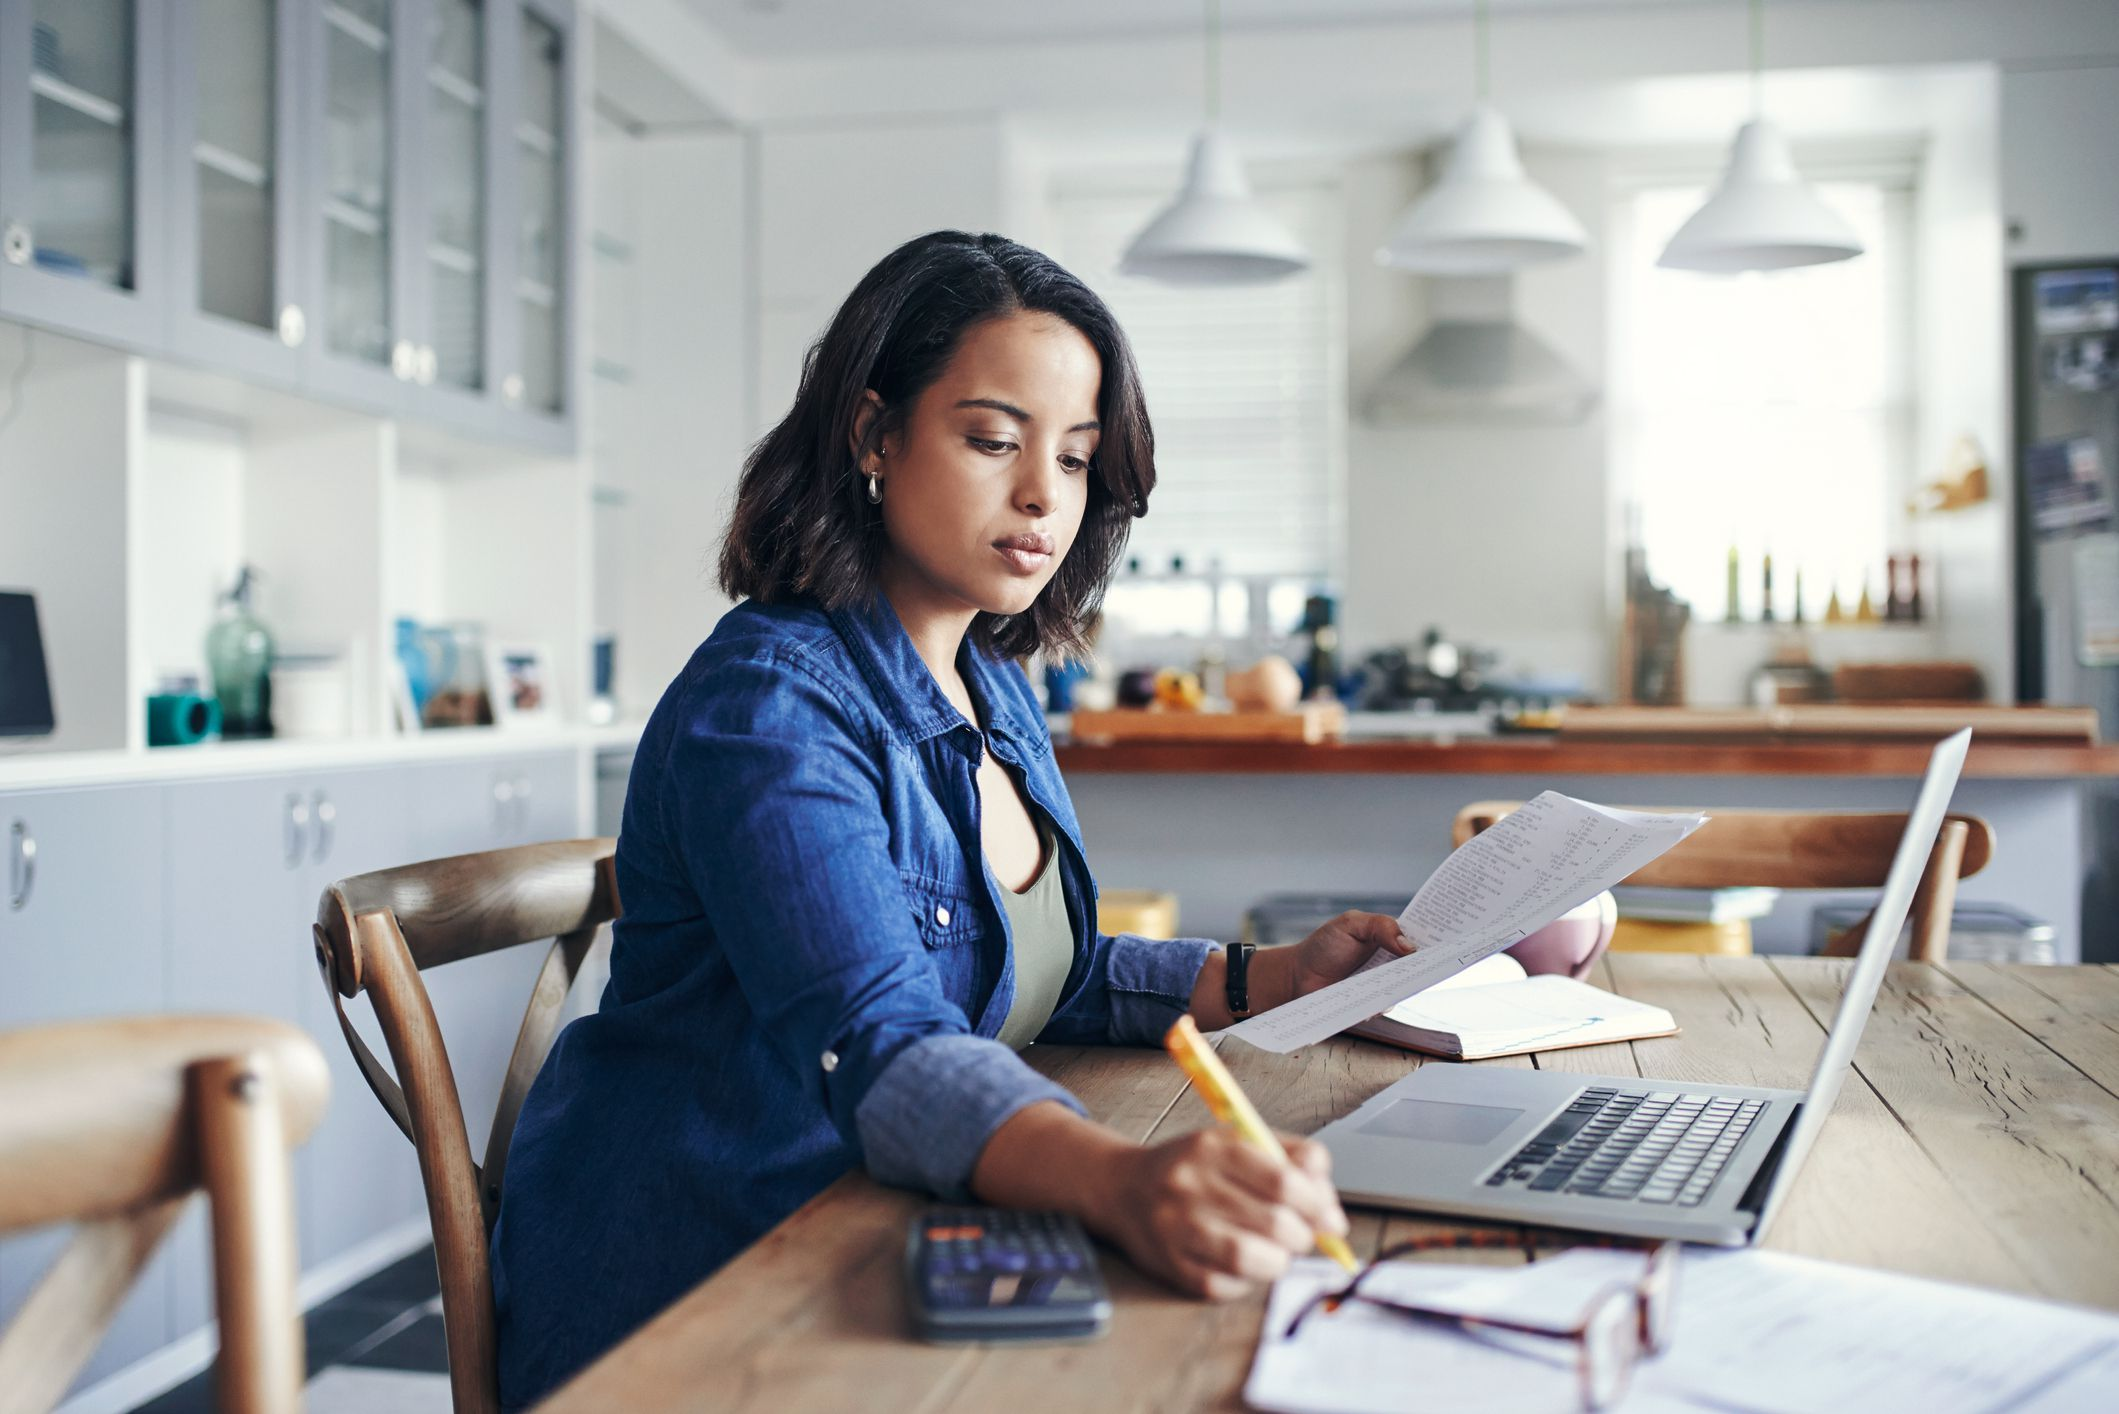 The 6 Best Health Insurance for Self-Employed in 2021